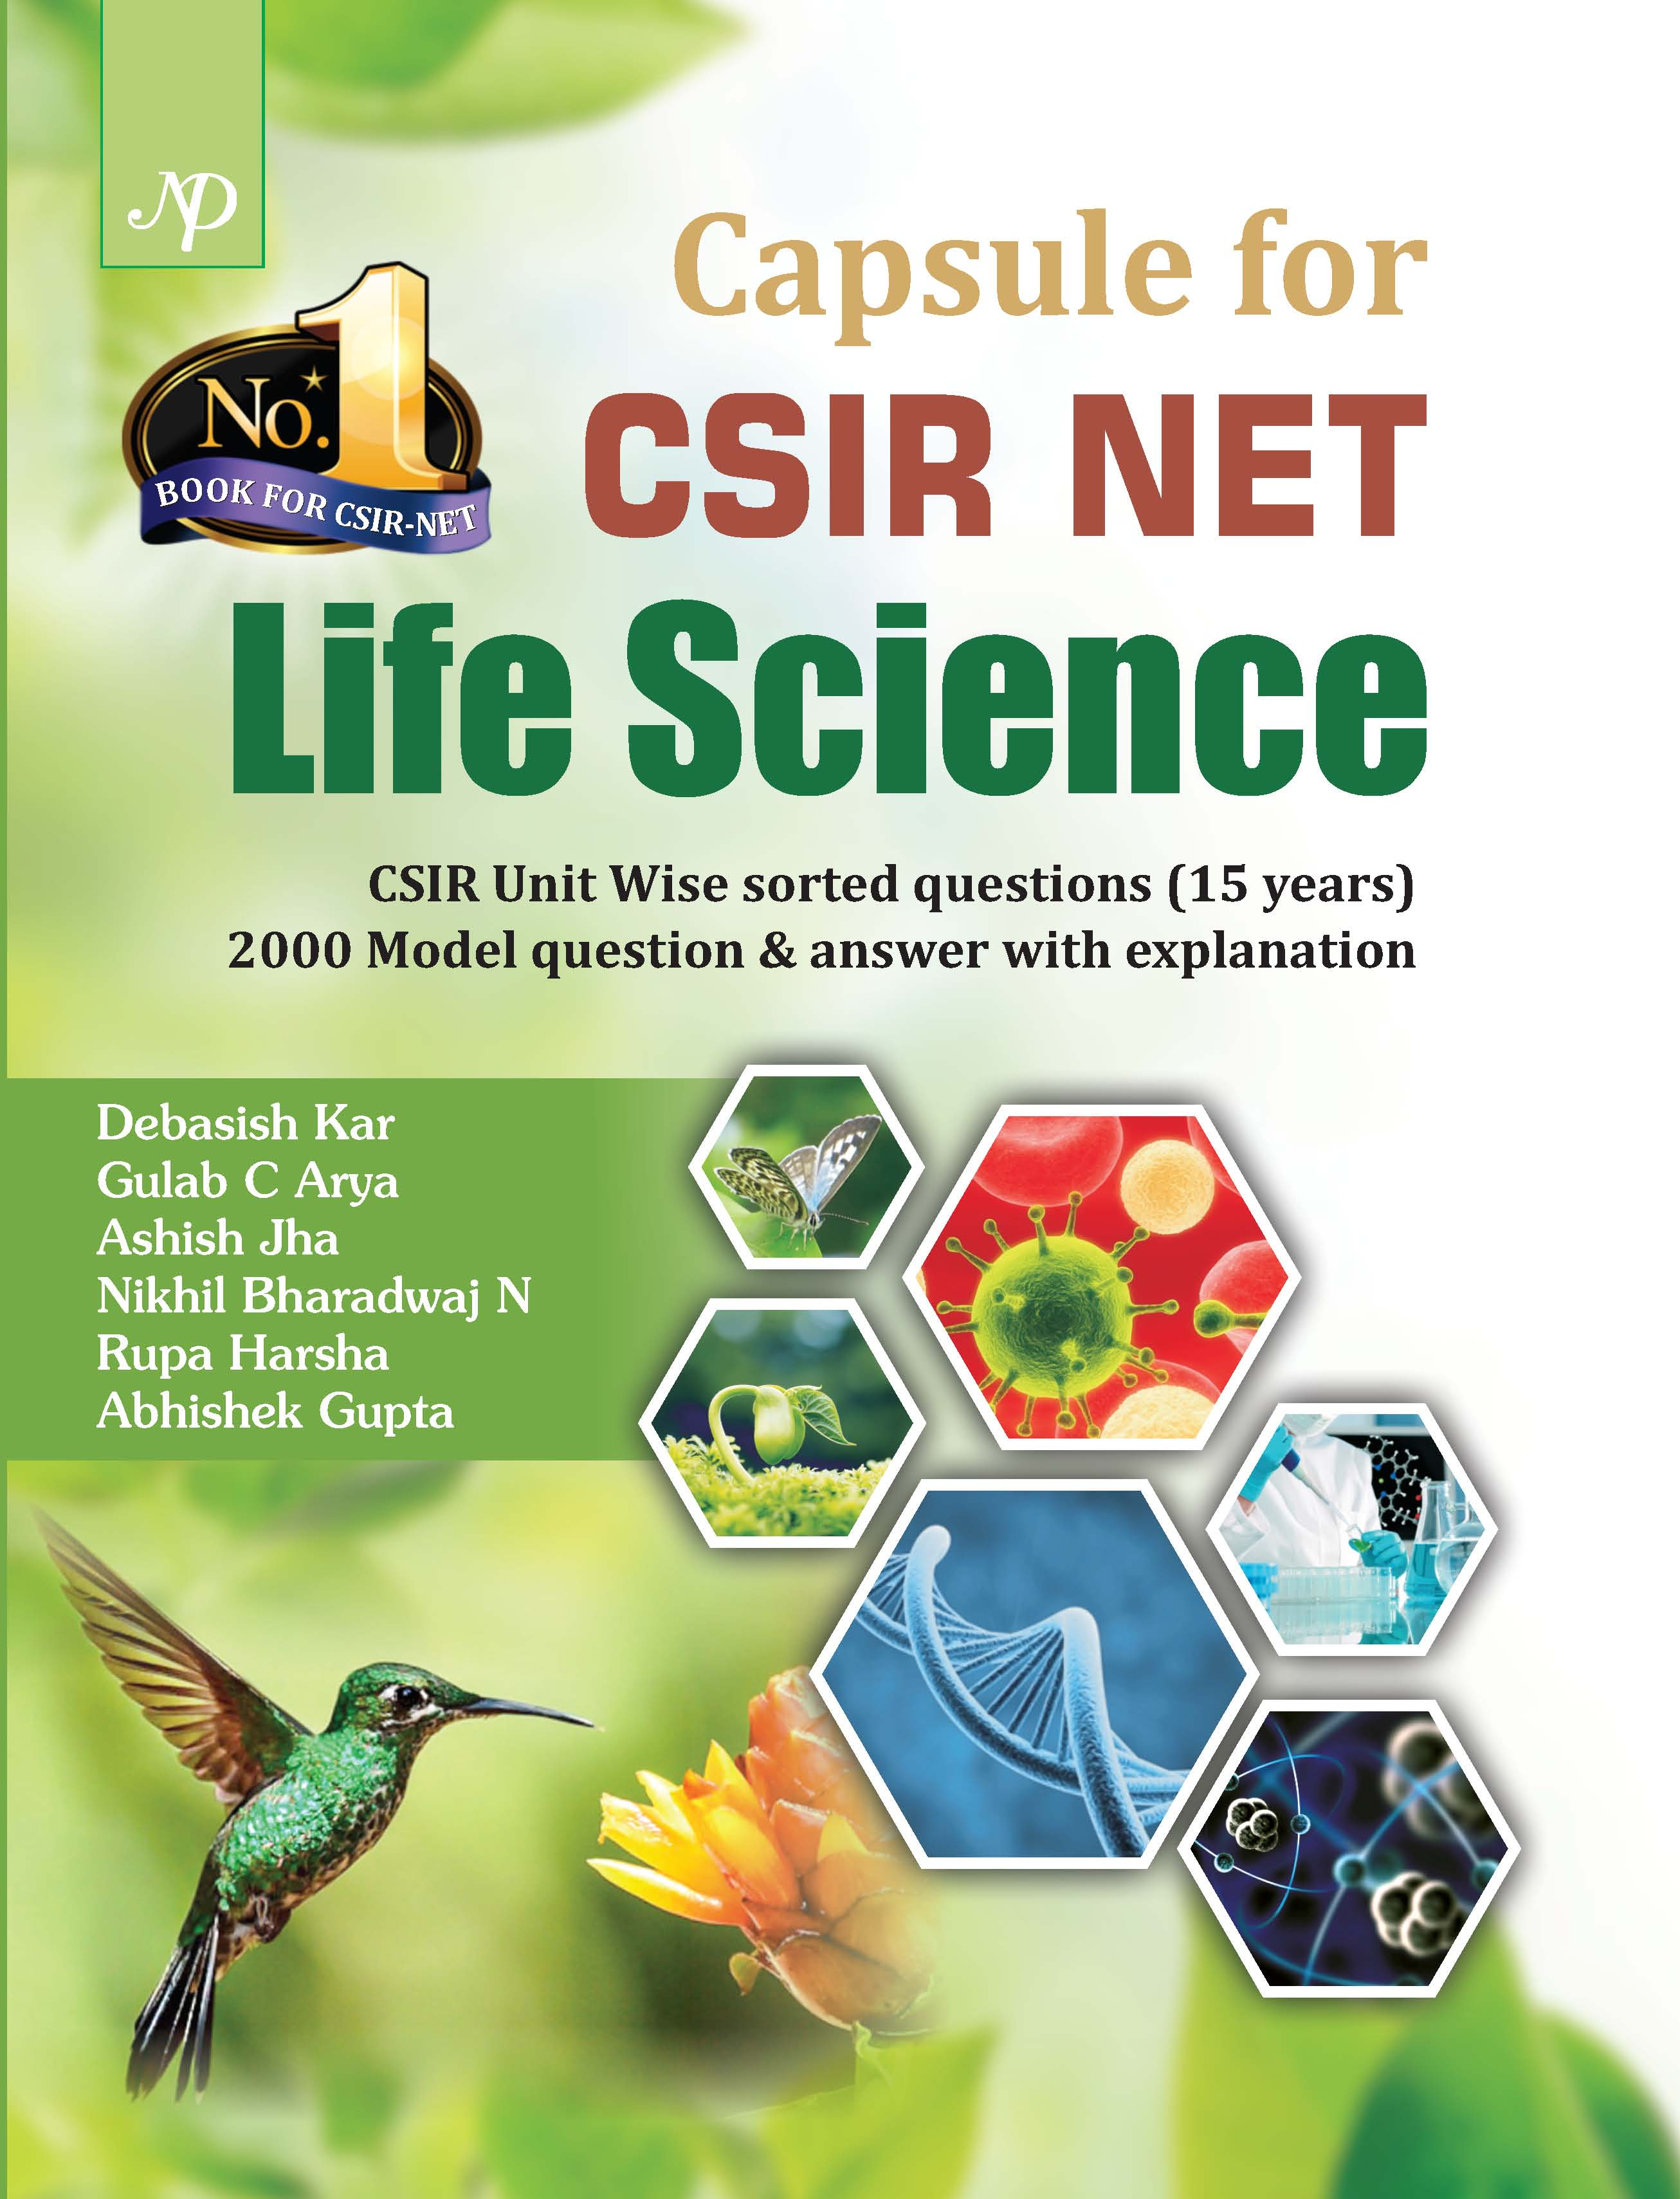 Capsule for CSIR NET Life Science.jpg